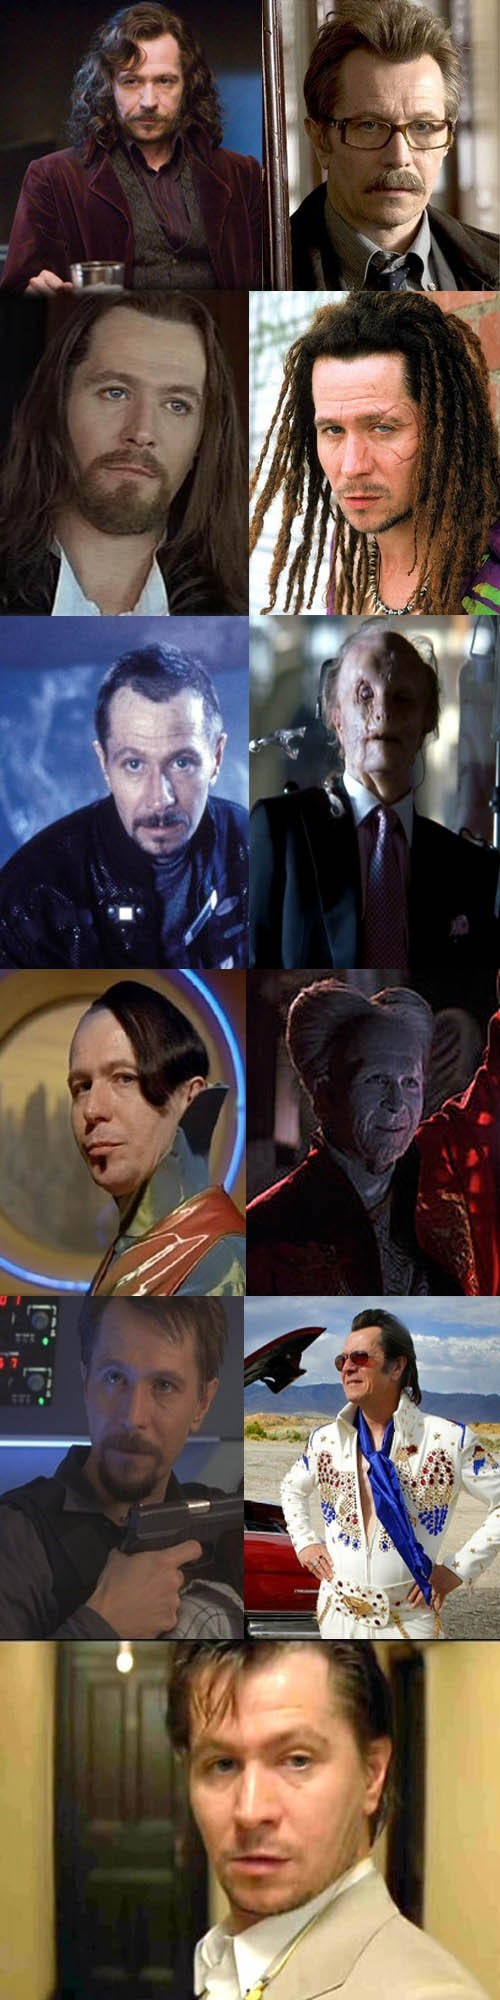 Gary Oldman,actor,celeb